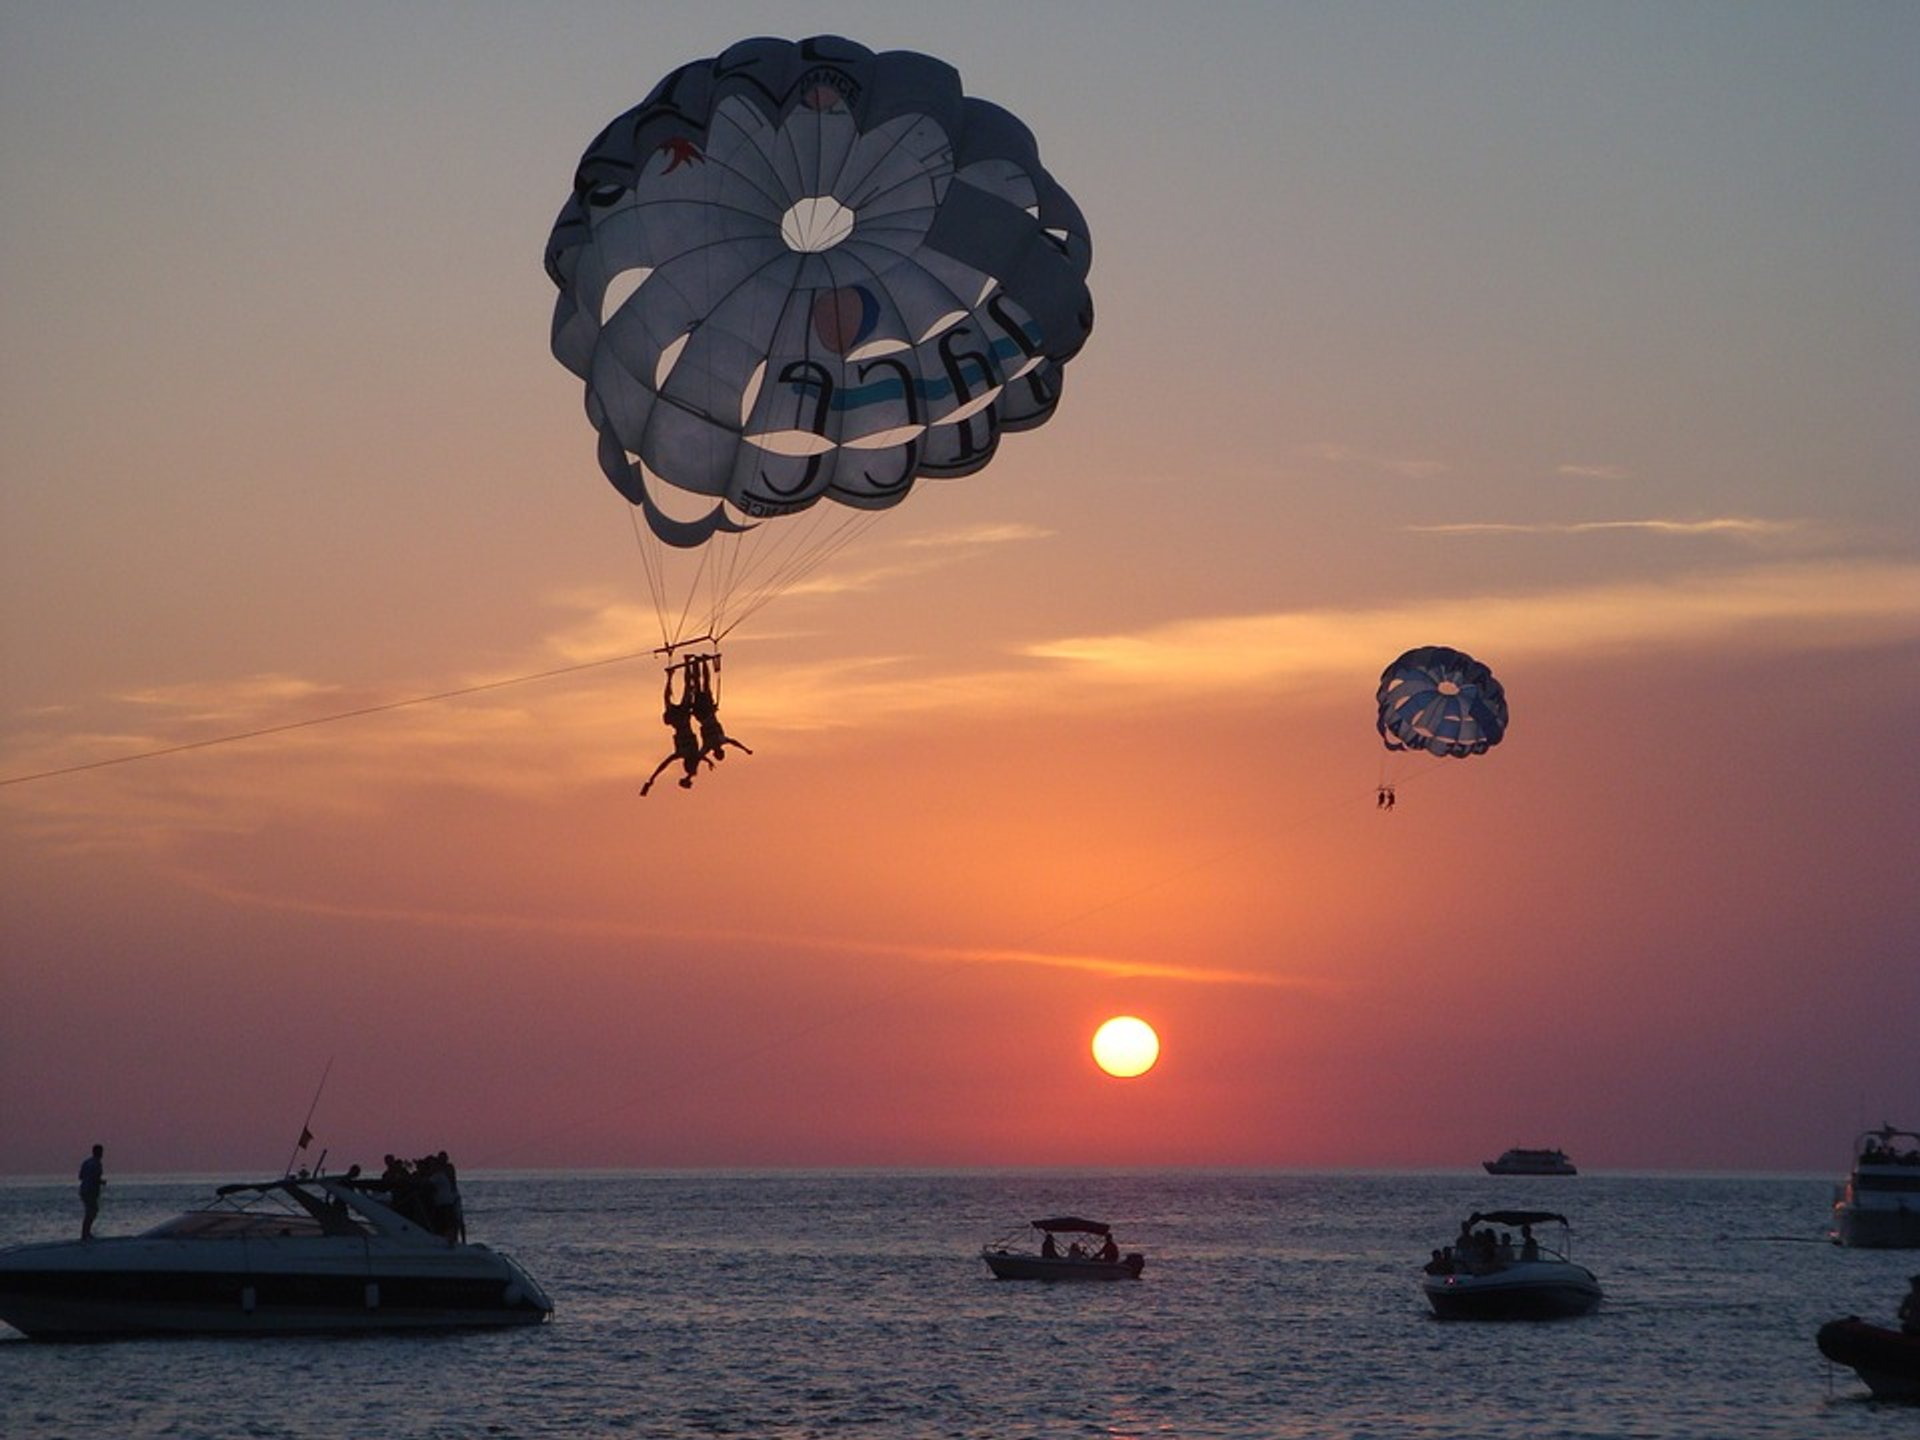 Take off Ibiza with Parasailing in Ibiza 2020 - Best Time